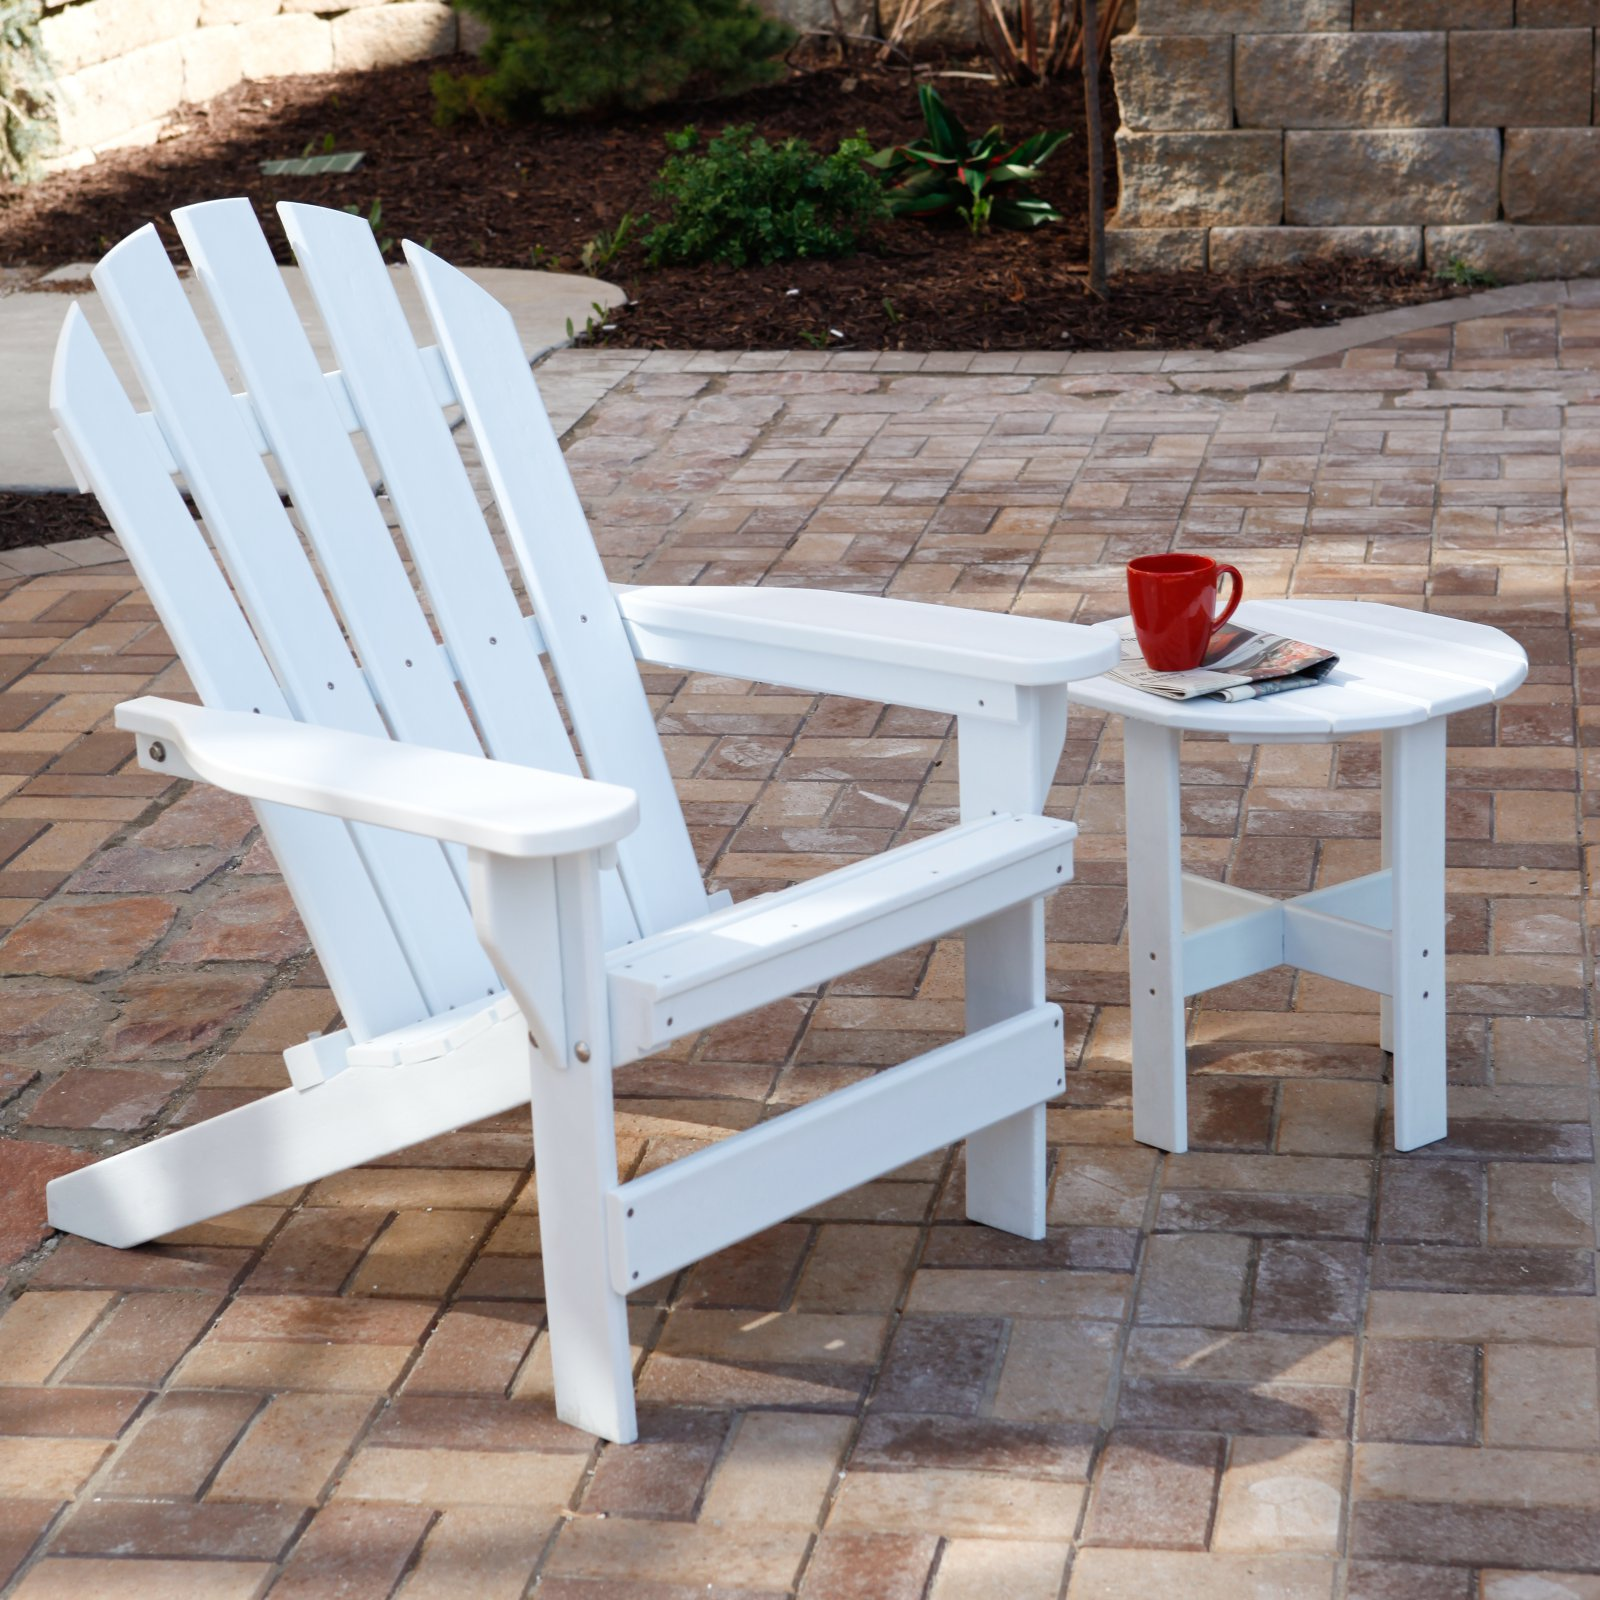 Jayhawk Plastics Recycled Plastic Cape Cod Adirondack Chair With Side Table